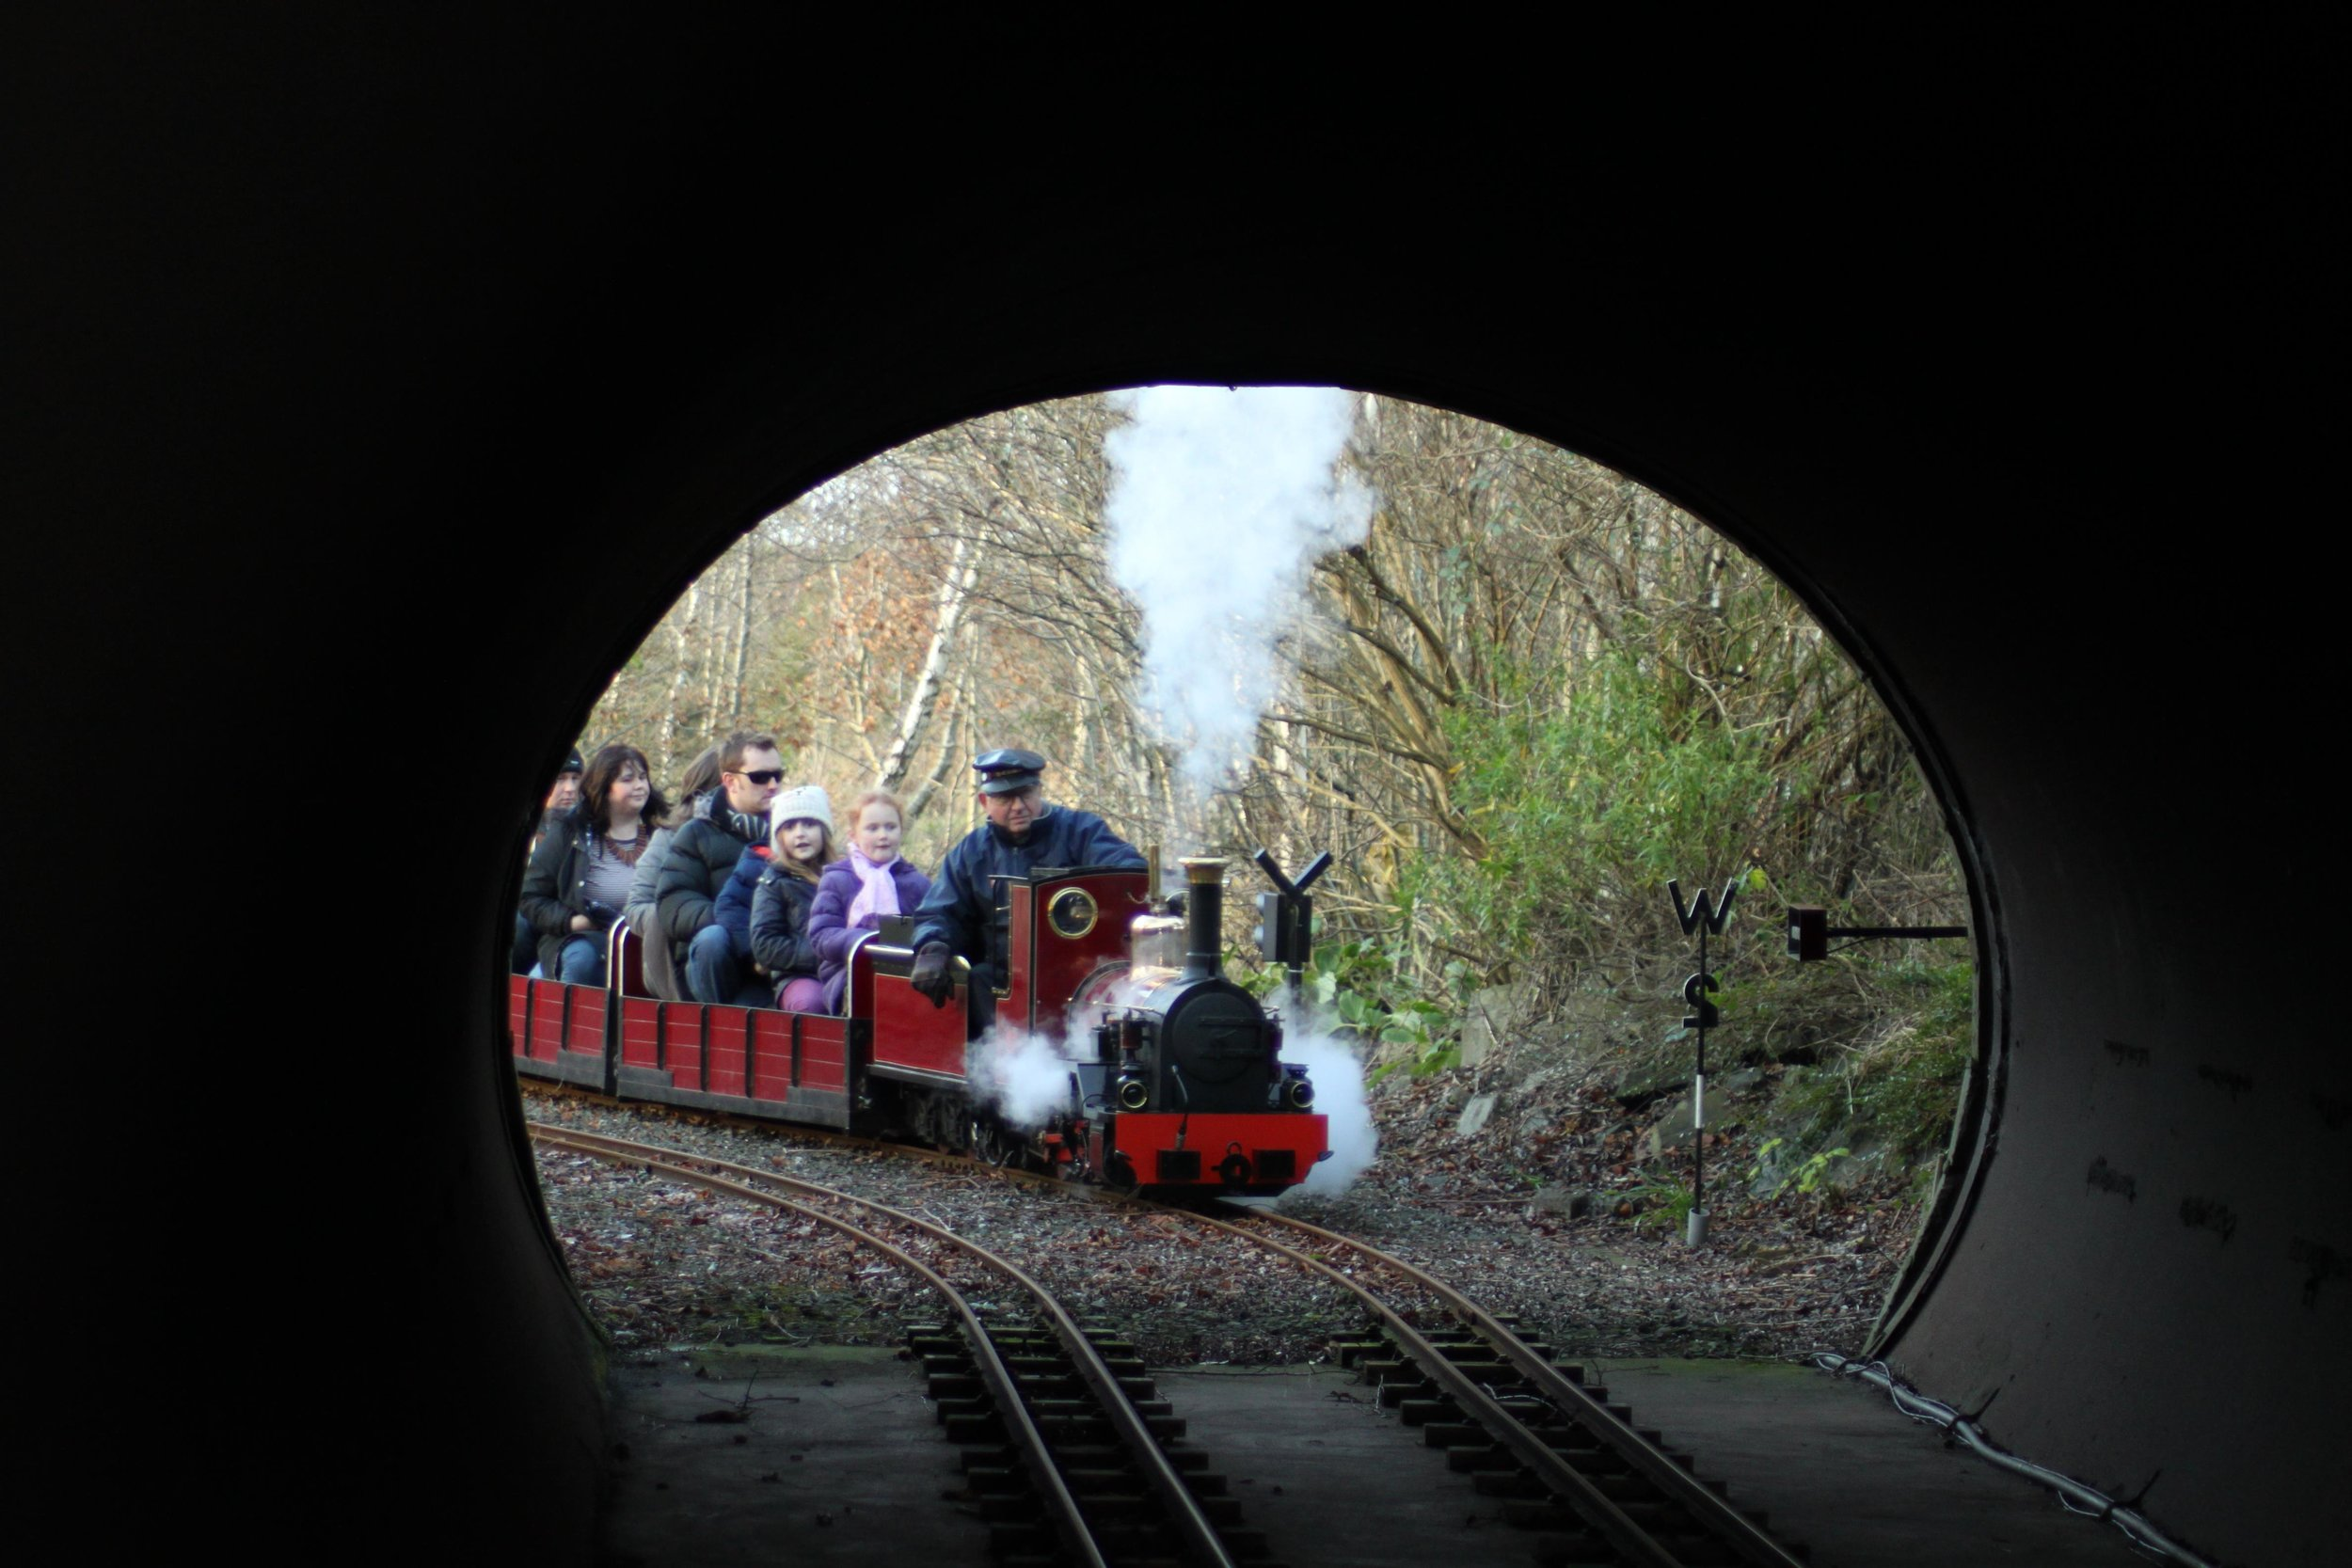 drumawhey-miniature-railway-belfast--co-down-miniature-railway-society-ltd.jpg